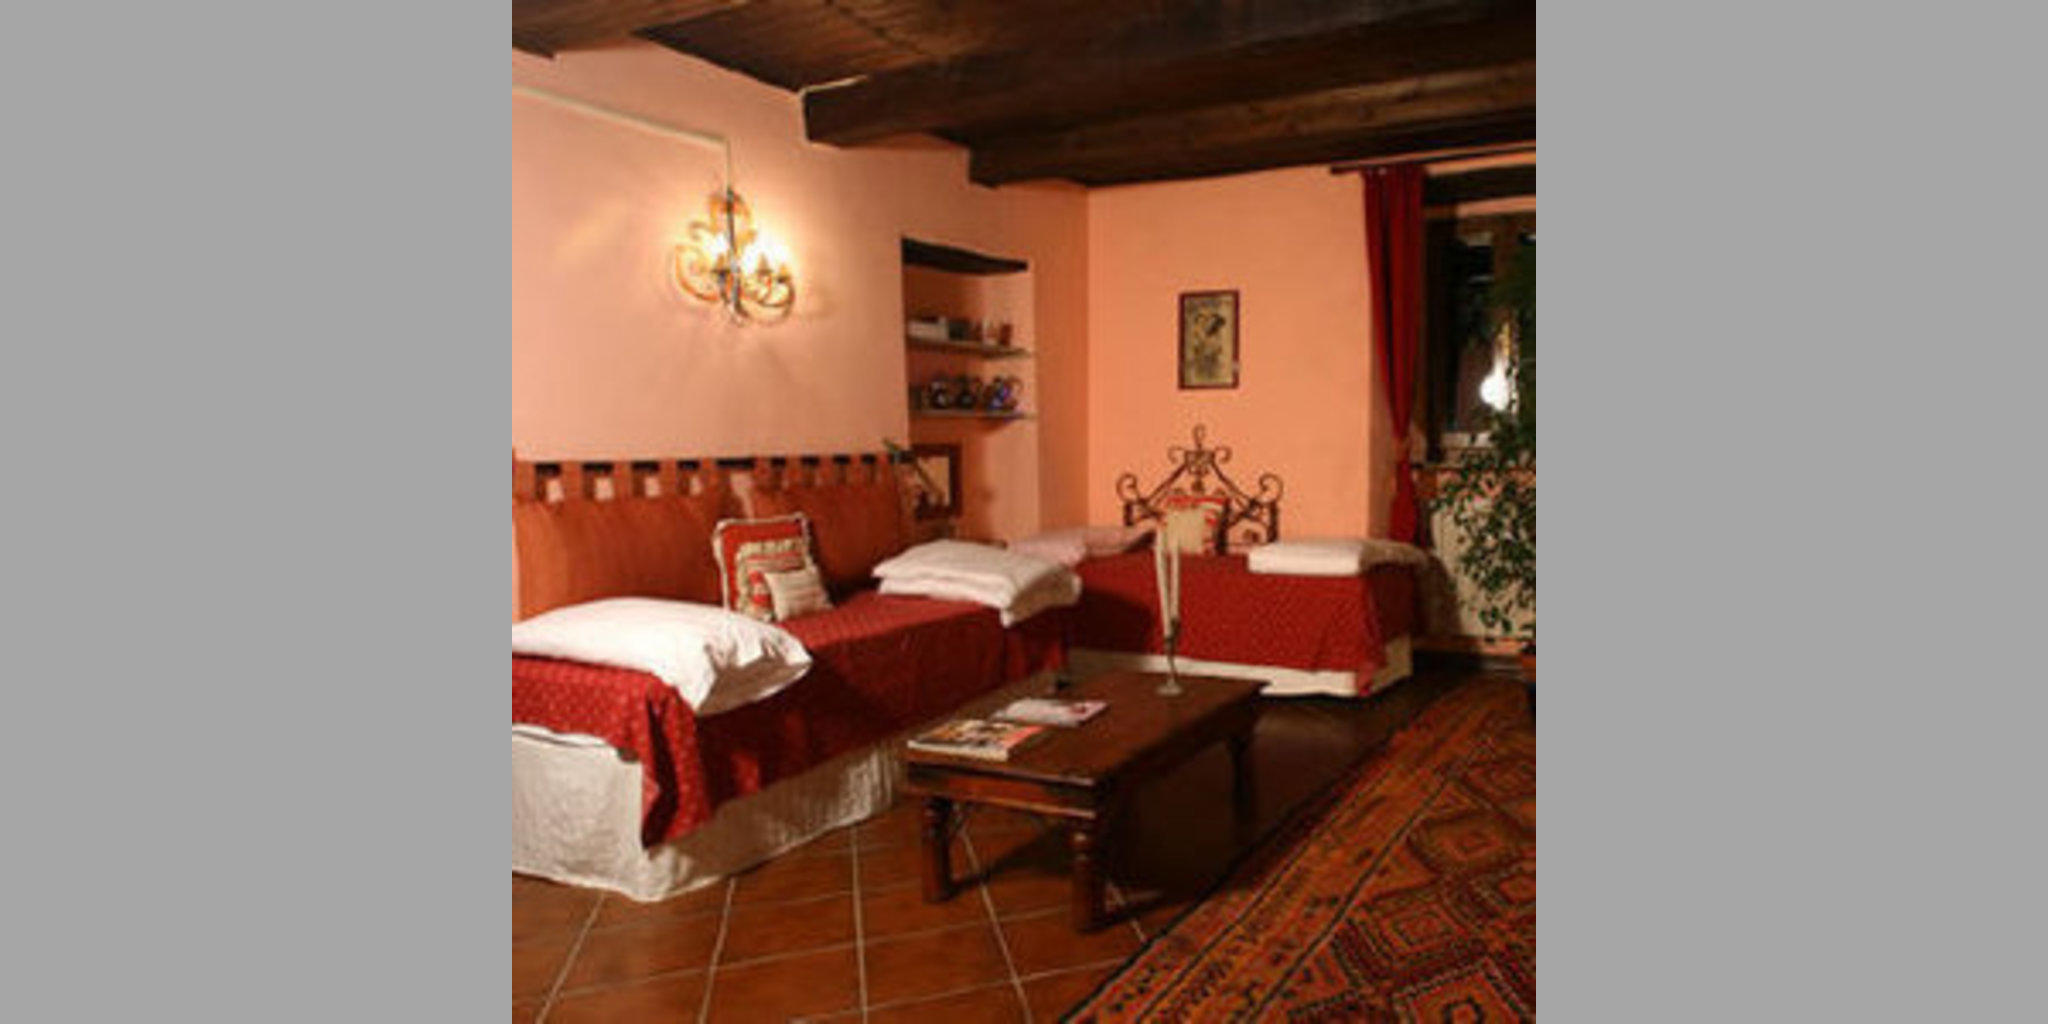 Bed & Breakfast Gallicano - Trassilico